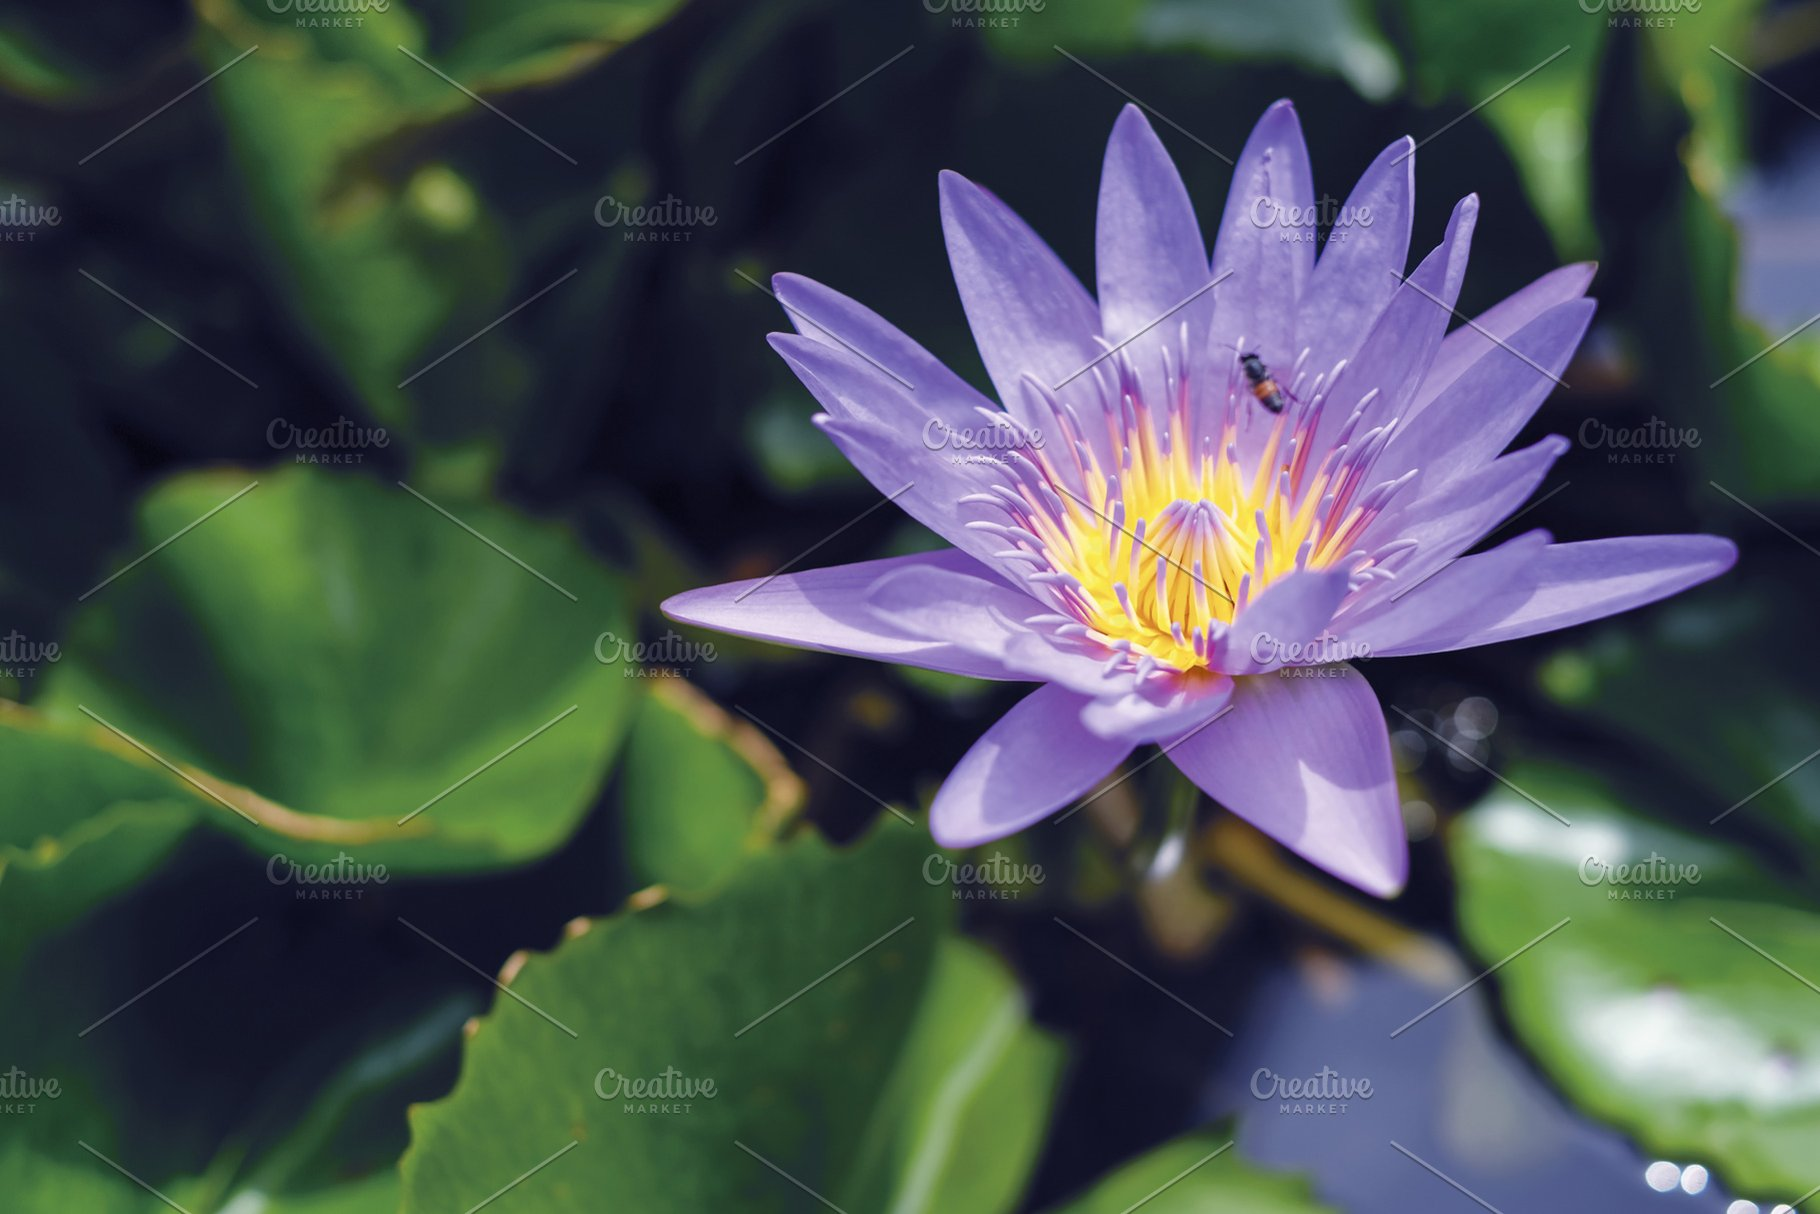 Violet Lotus Flower In Pond Nature Photos Creative Market